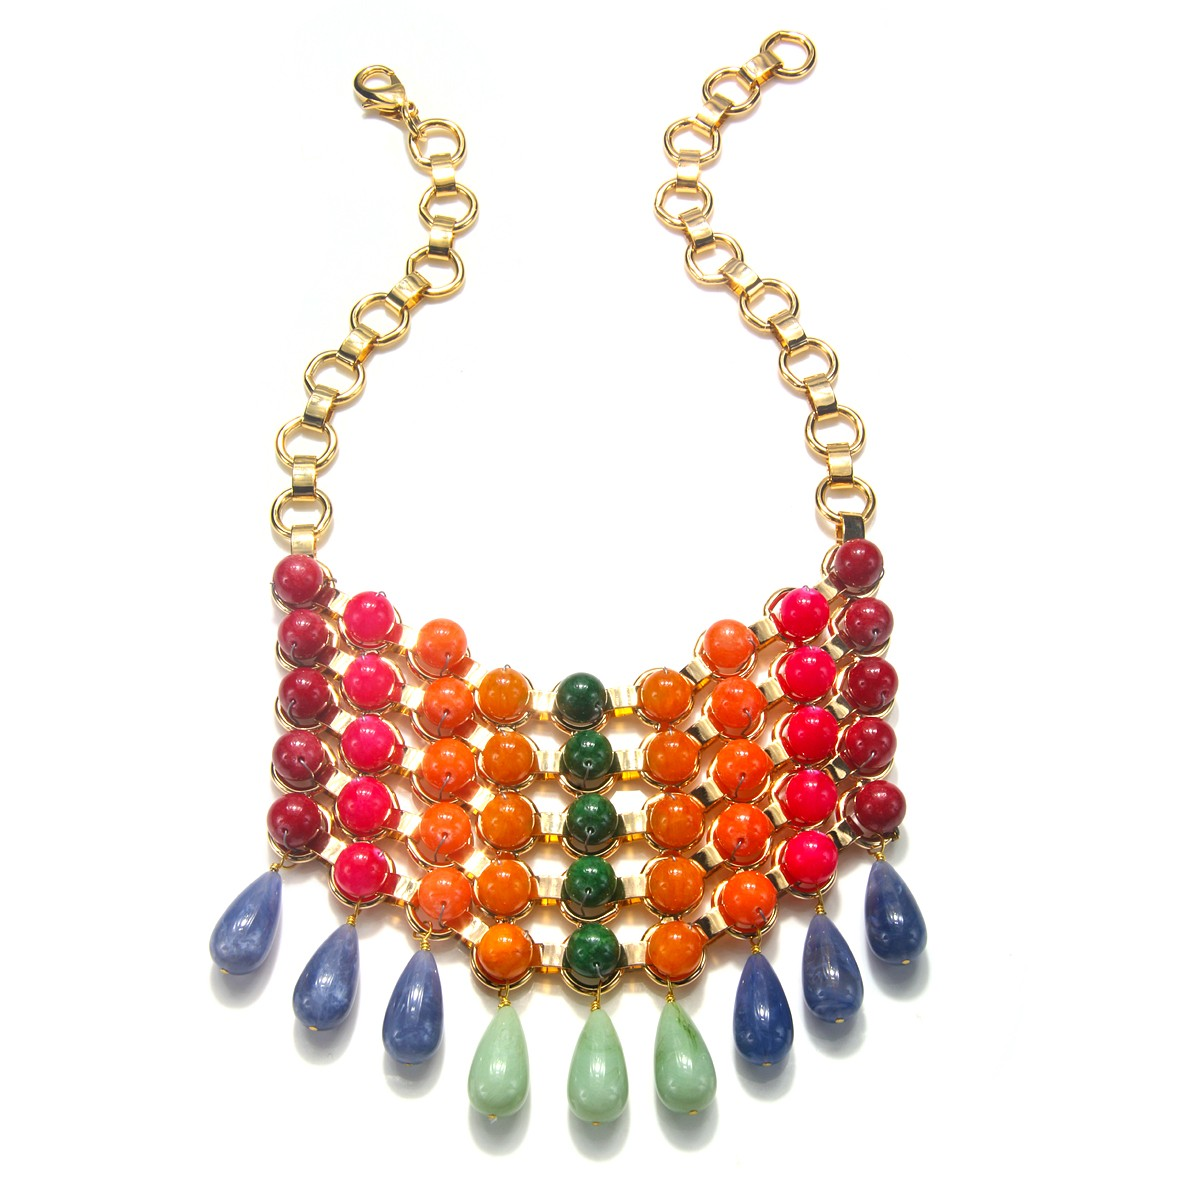 Gradient Bib Necklace  by DANNIJO | Charm & Chain